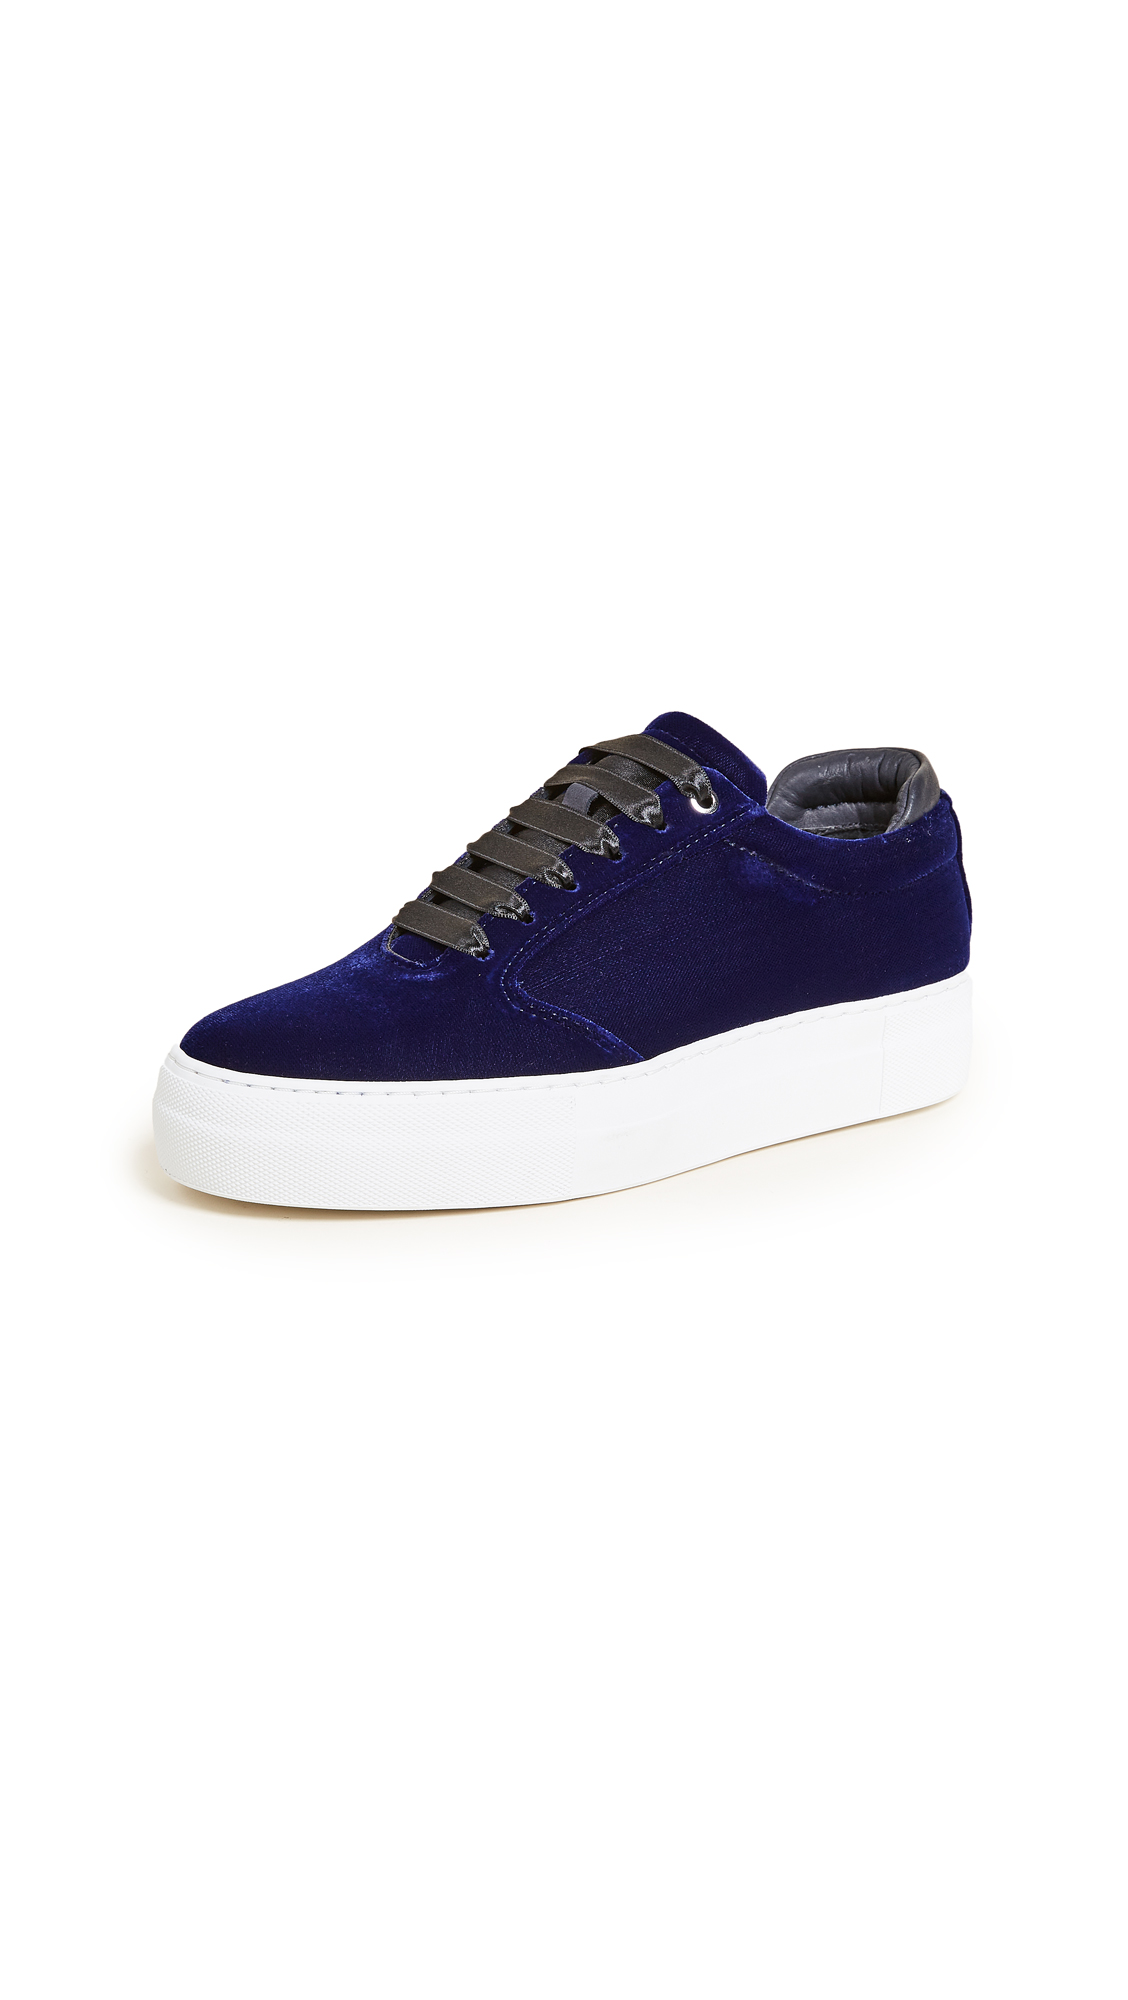 WANT LES ESSENTIELS Lalibela Sneakers - Blue